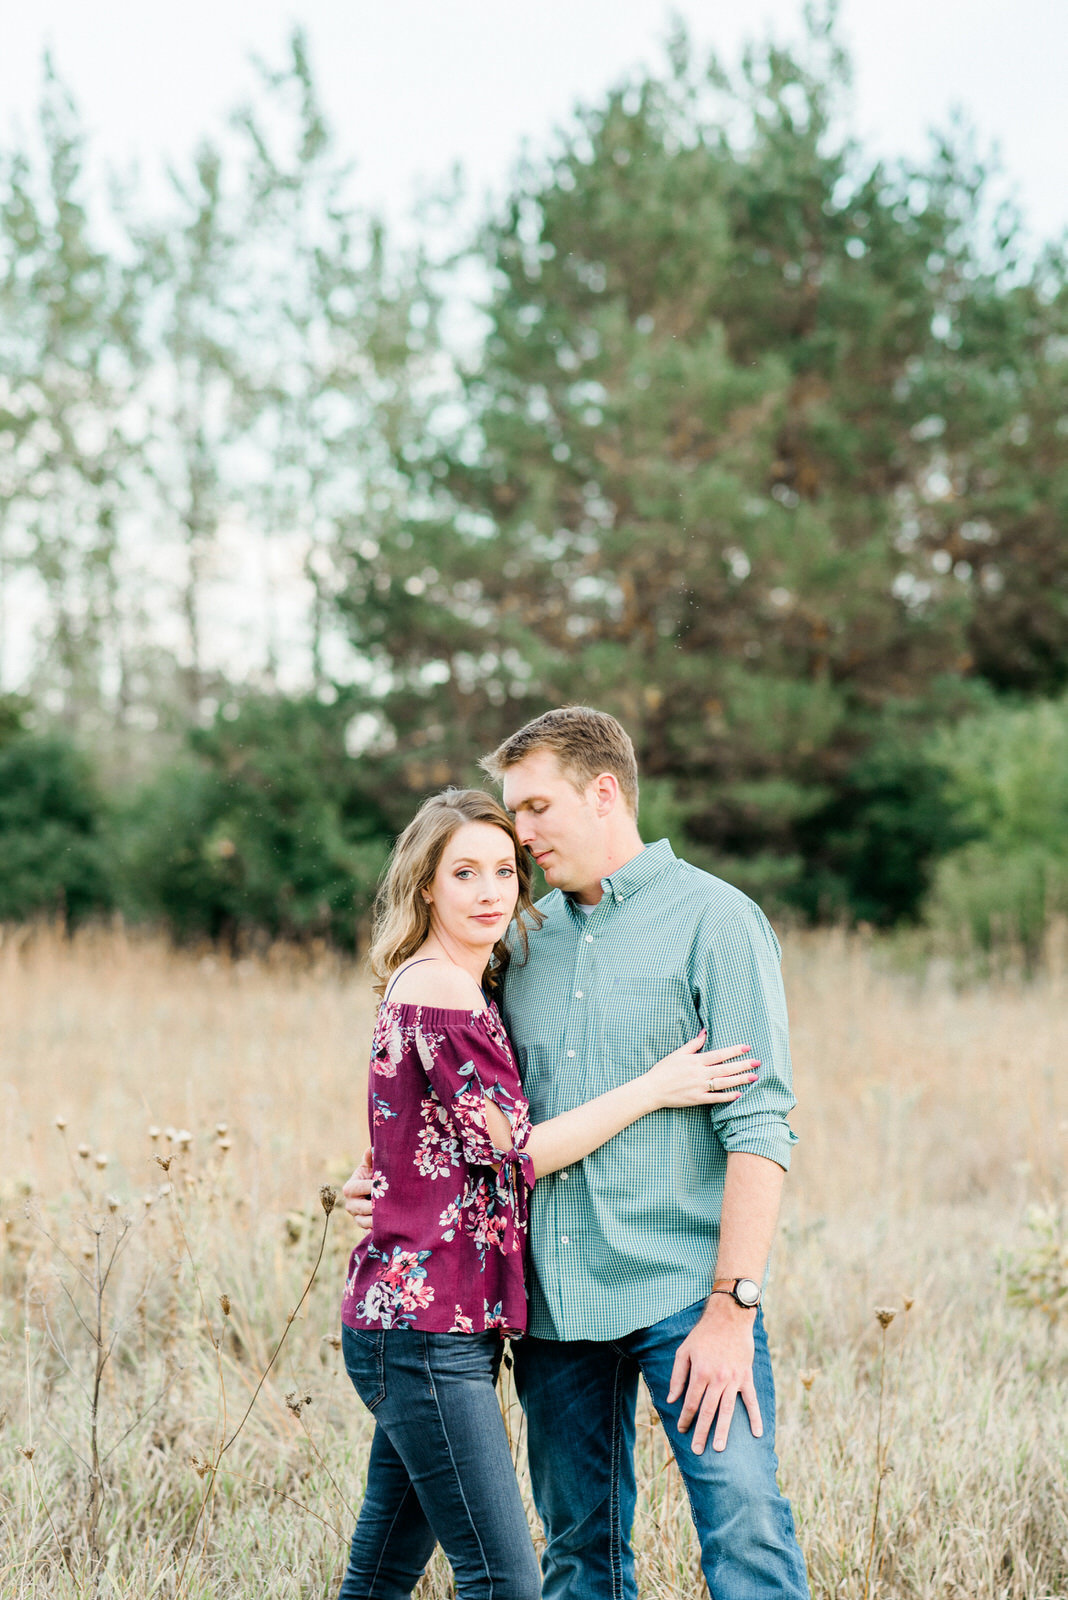 NIcole Corrine Adventure engagement session Omaha Mason City Des Moines Lincoln